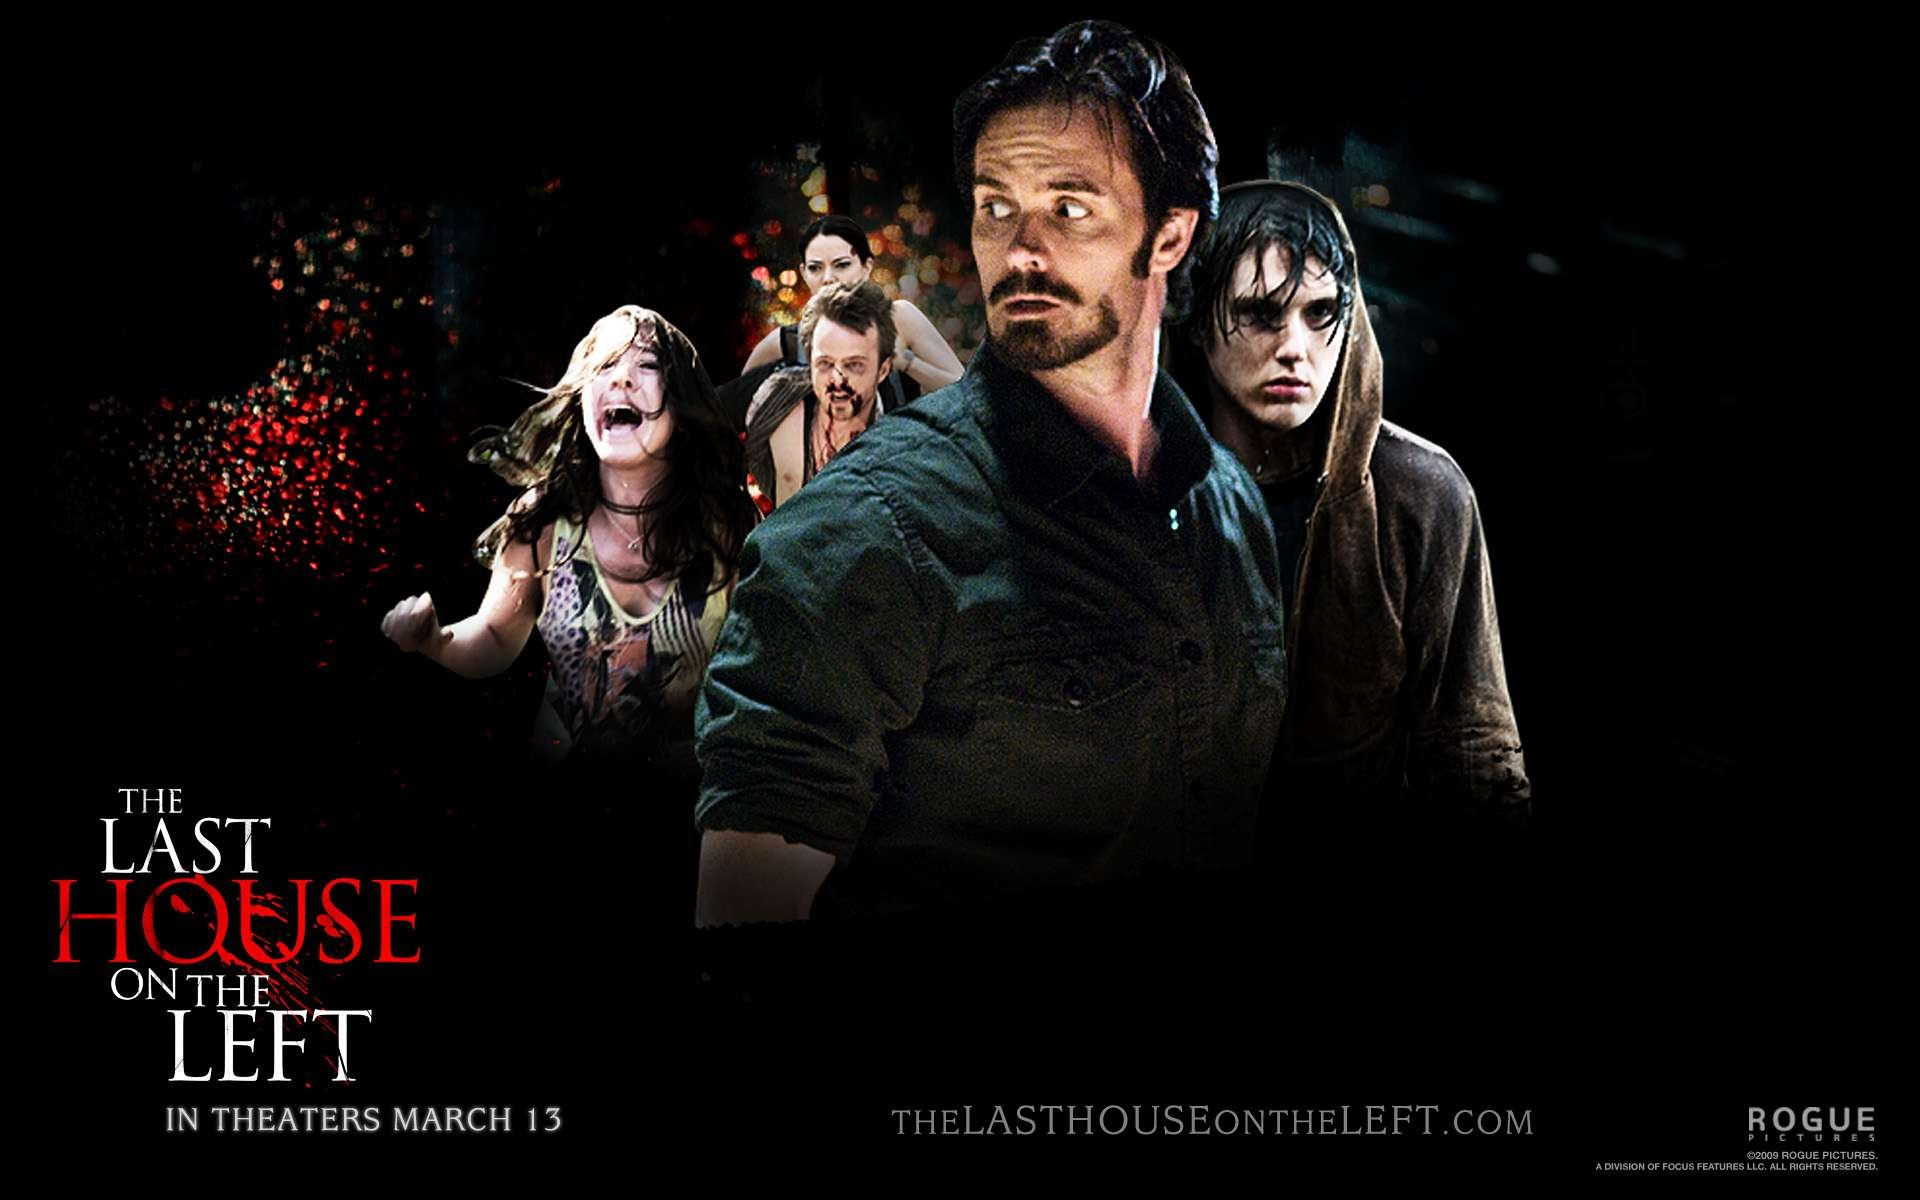 Wallpaper di The Last House on the Left